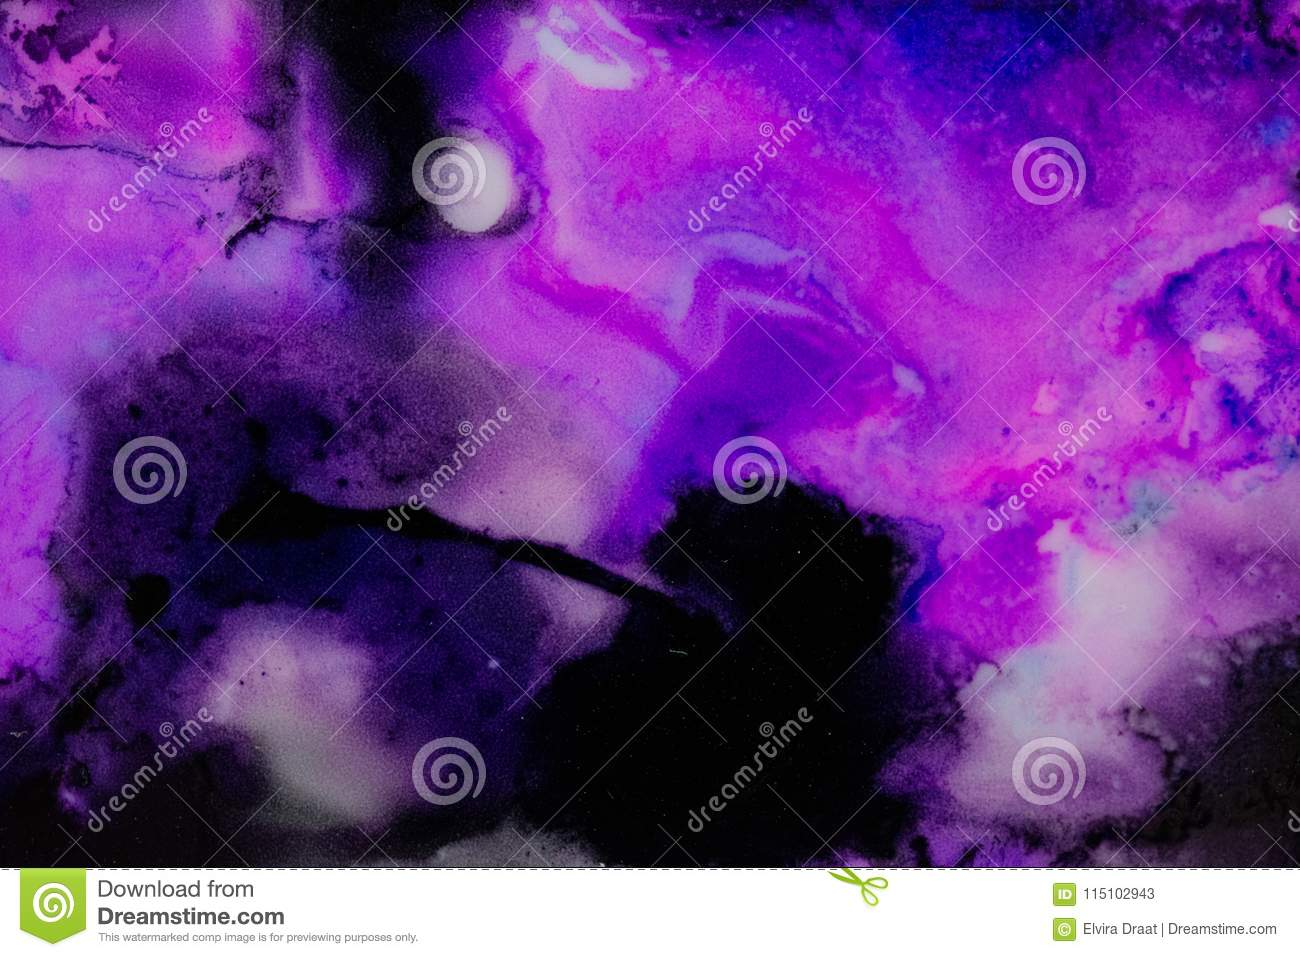 Handmade watercolor with purple black and white galaxy splatter useable as a background or texture